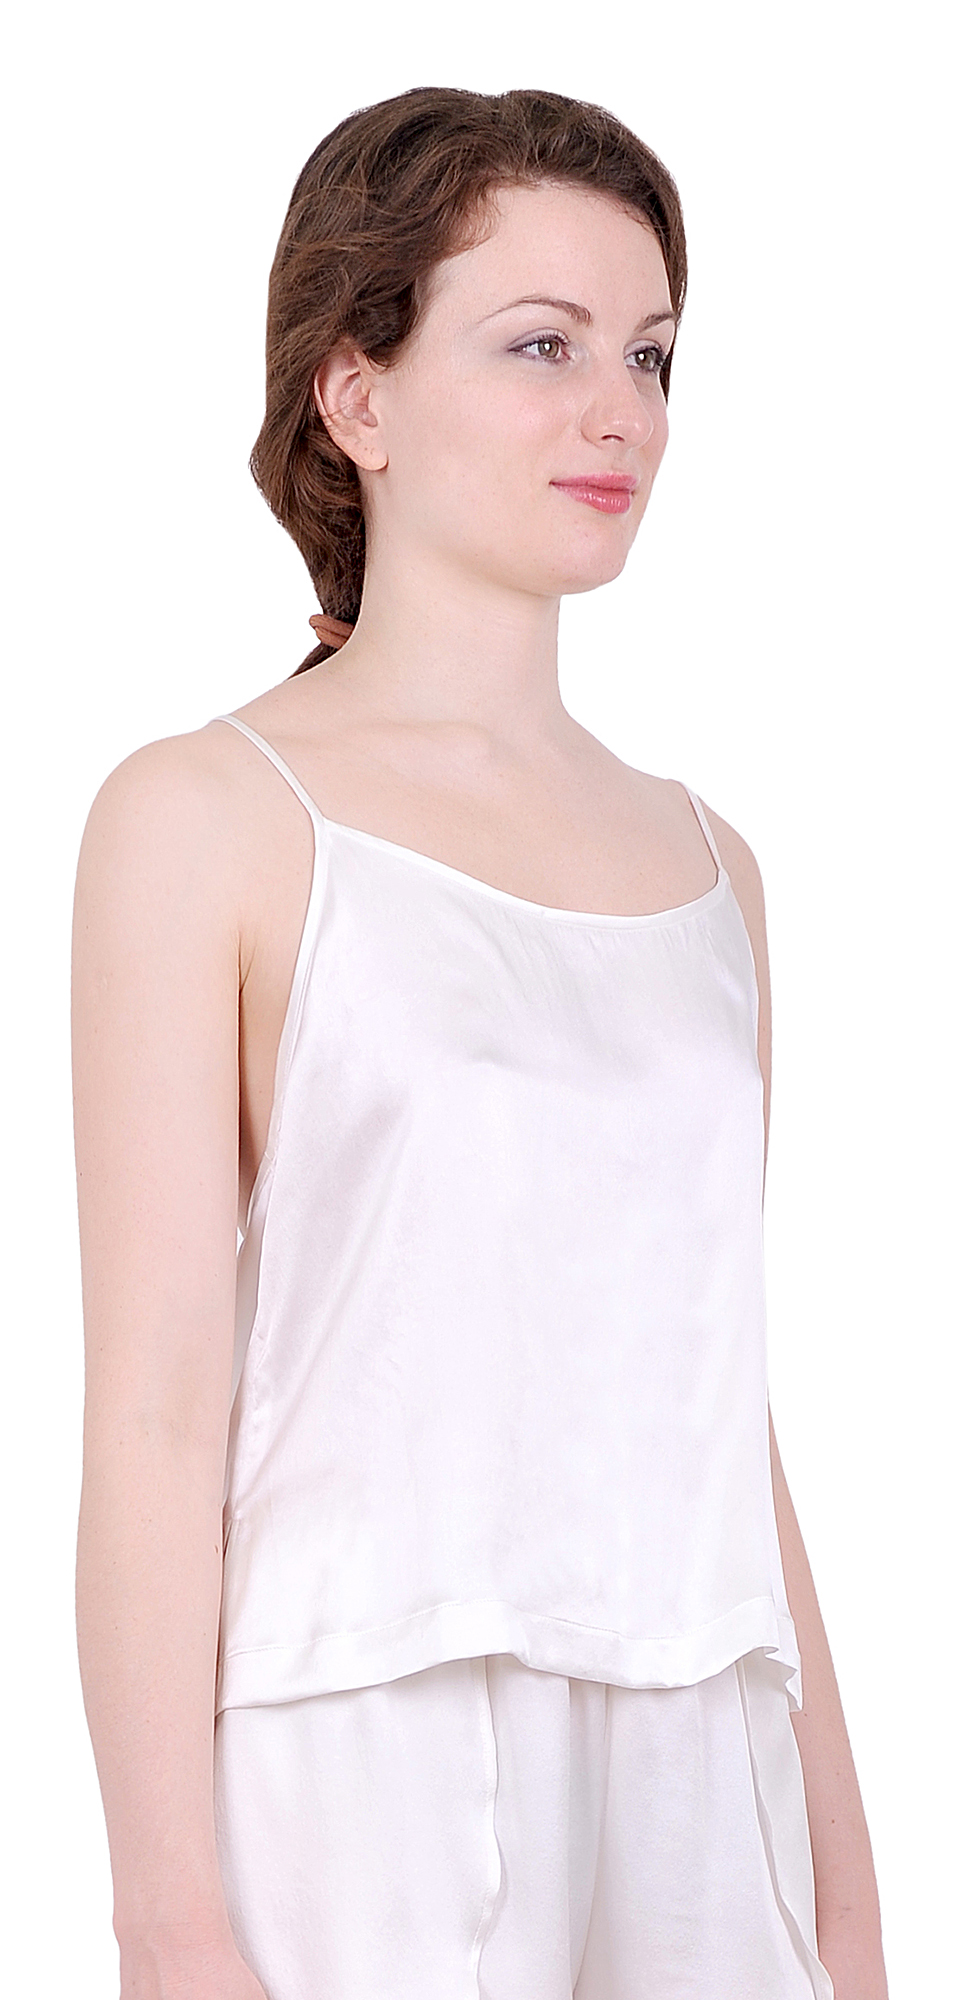 Differences between camisoles, tanks, and tube tops. Generally, the camisole is worn under clothing or as sleepwear. Its adjustable, thin straps may be adorned with lace for layering.